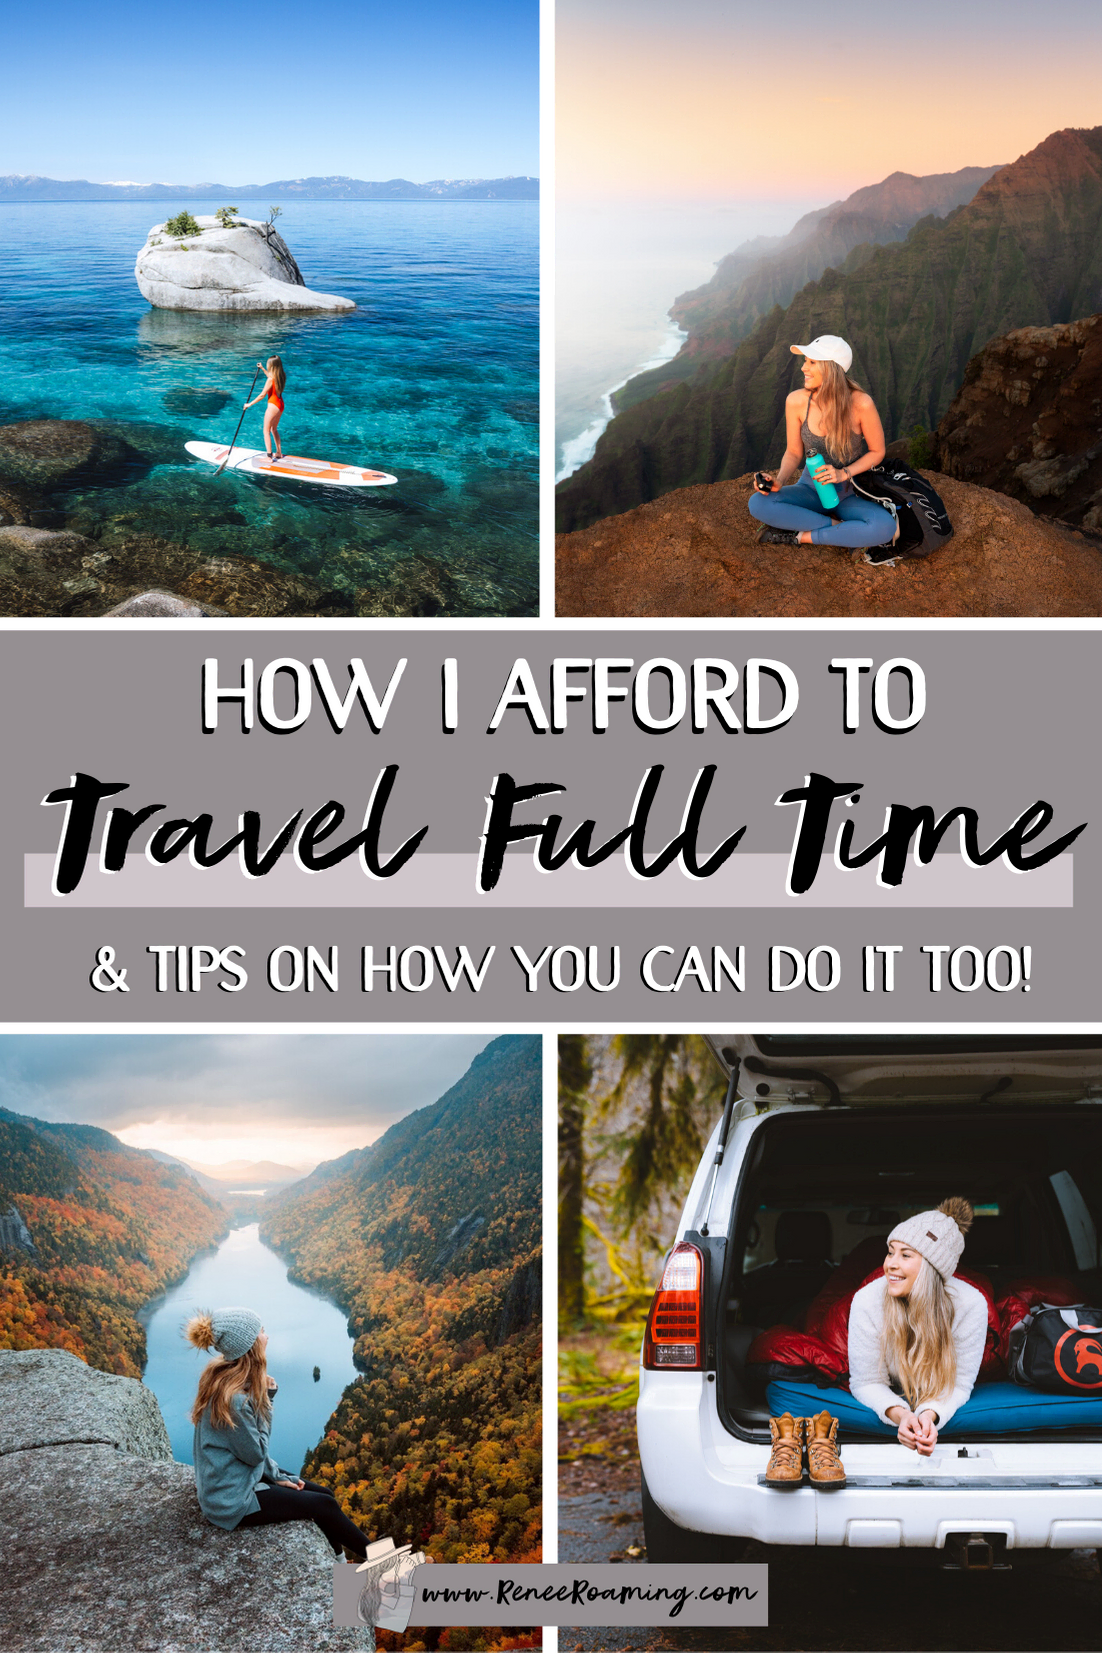 How To Travel Full Time - Must Know Tips for Affording to Travel the World